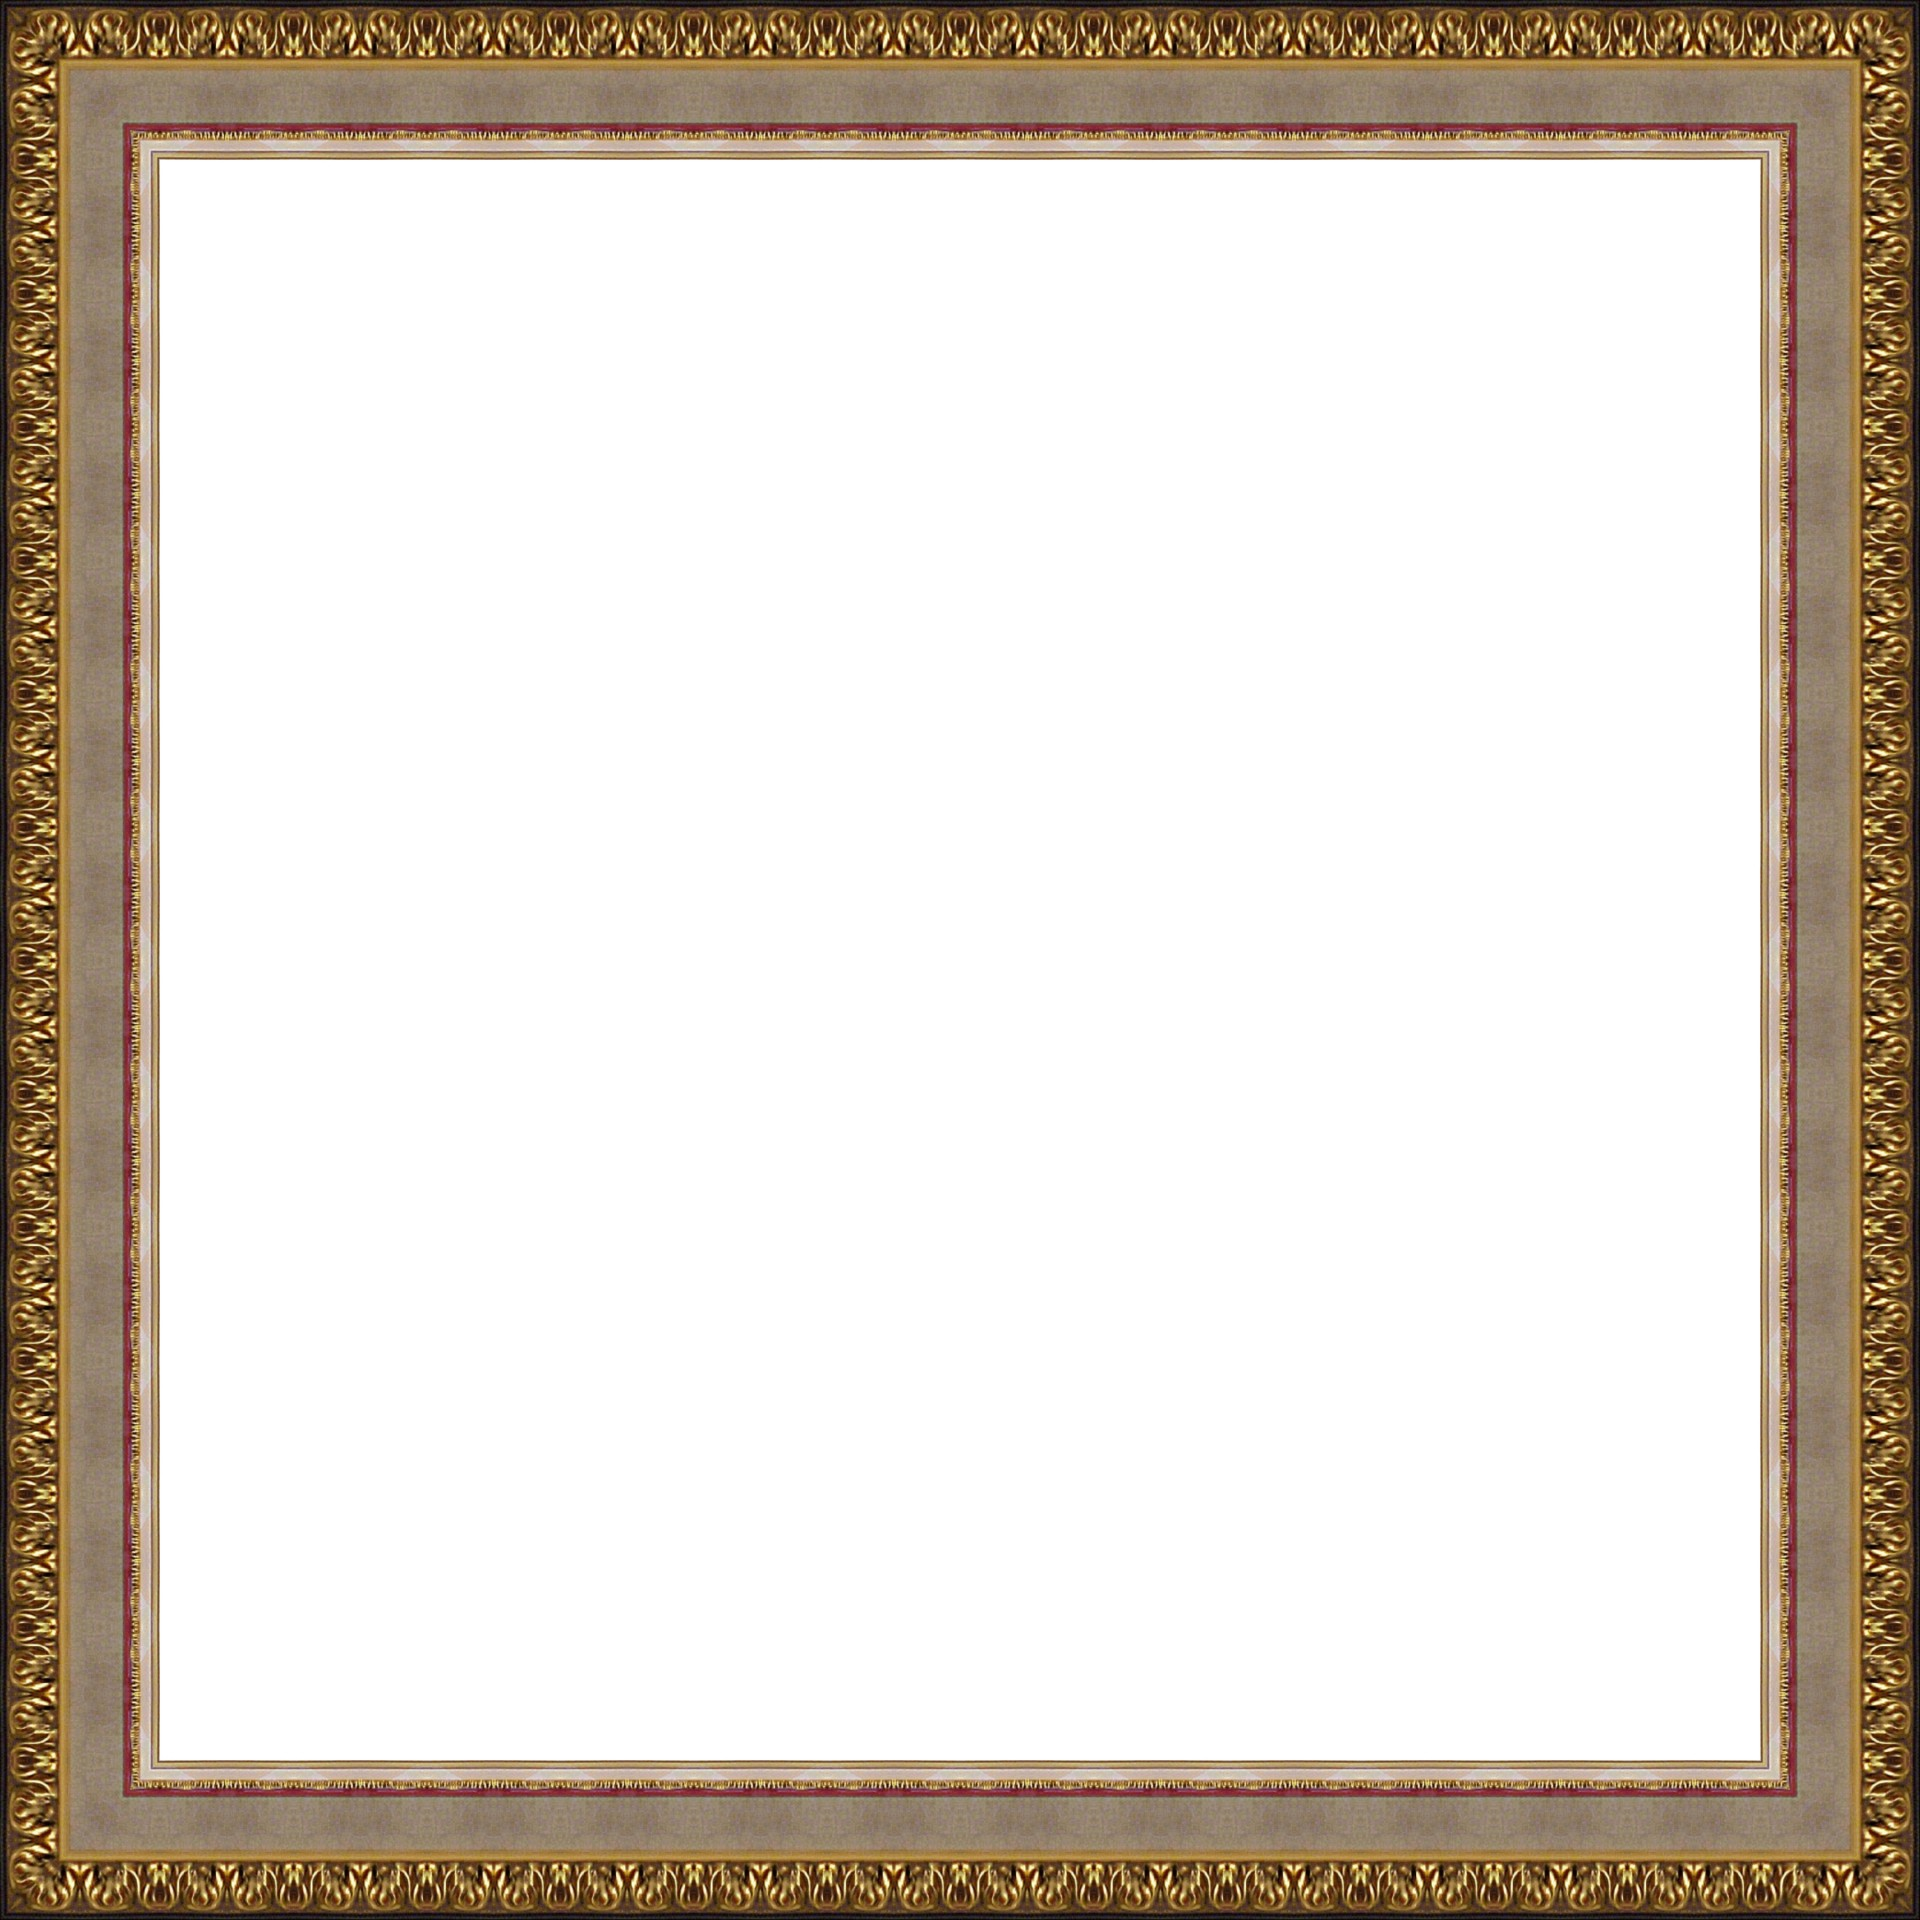 Pro,frame,golden,gilt,rococo - free photo from needpix.com